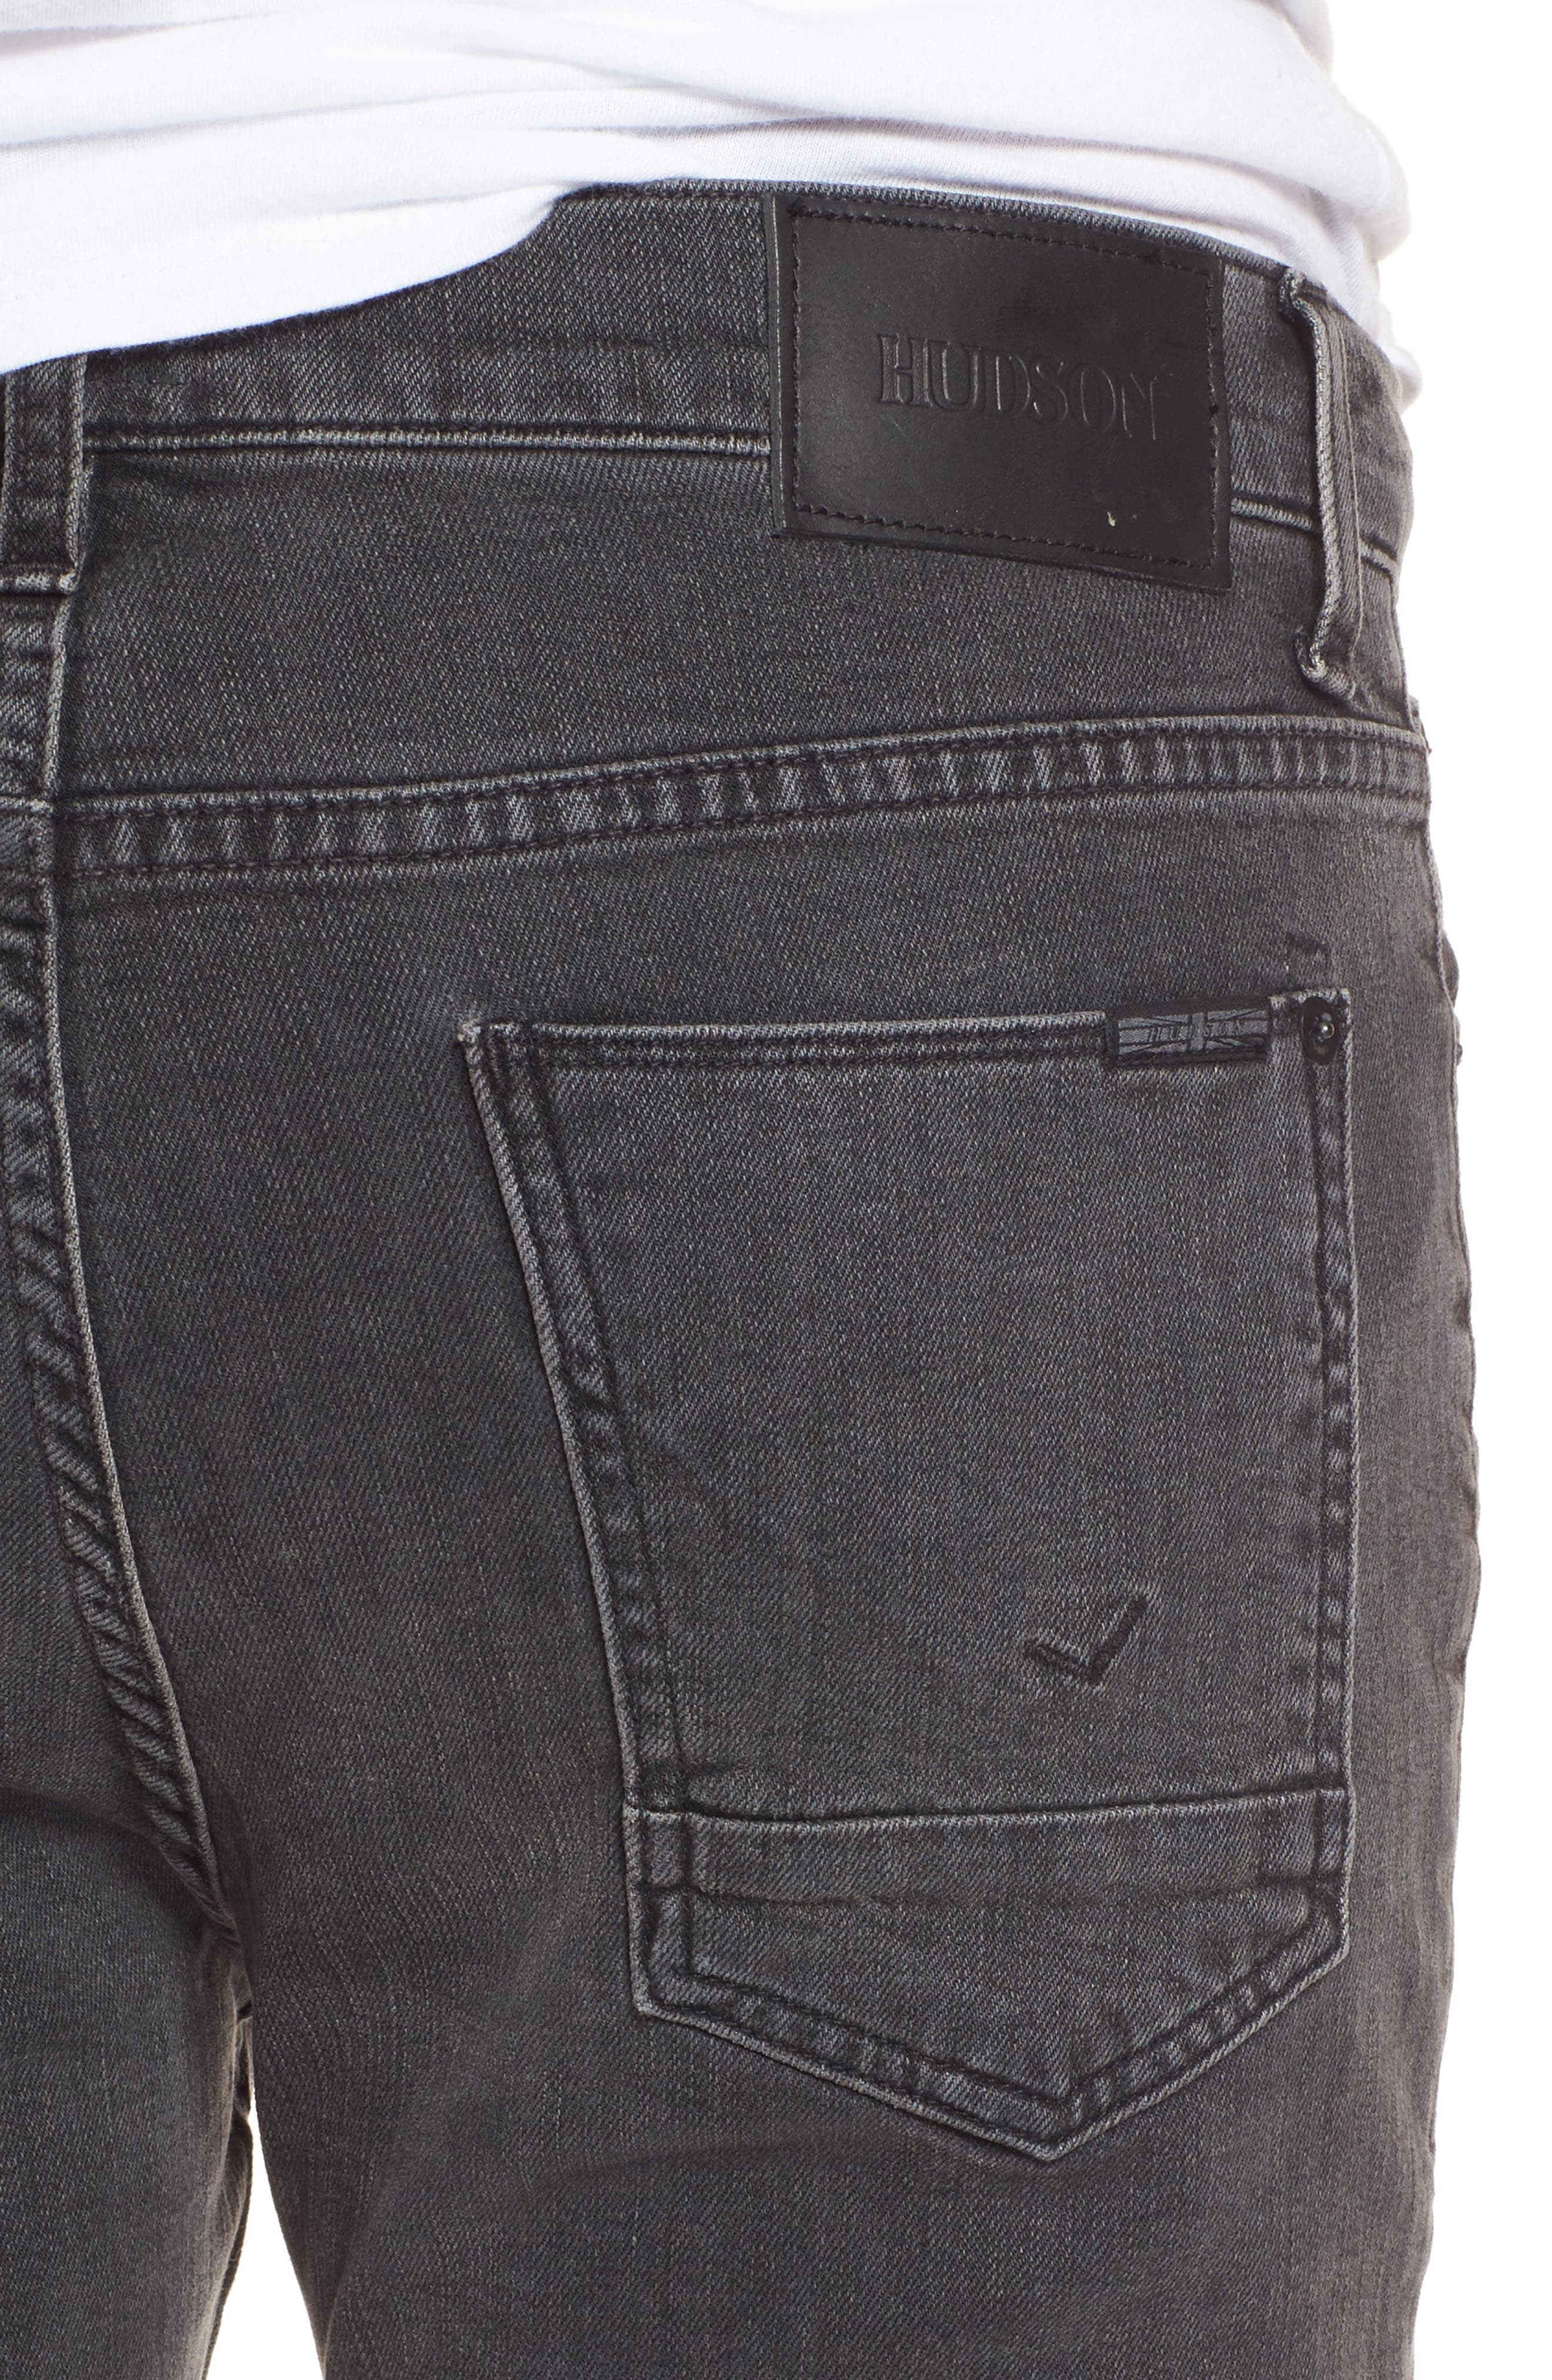 Axl Skinny Fit Jeans,                             Alternate thumbnail 4, color,                             020